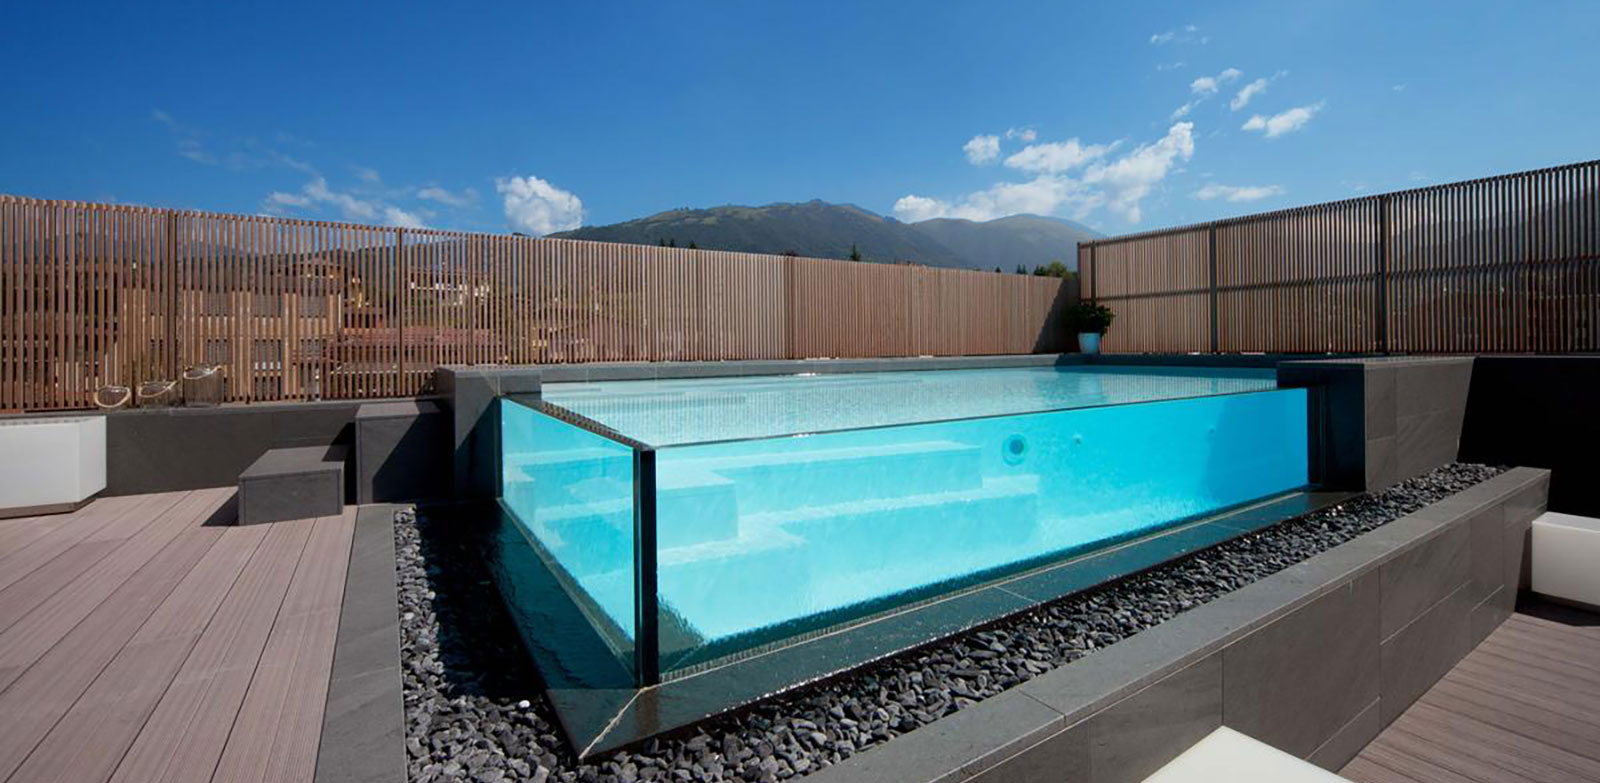 Piscine miroir toulouse design cloture piscine amovible - Piscine carrelage gris boulogne billancourt ...